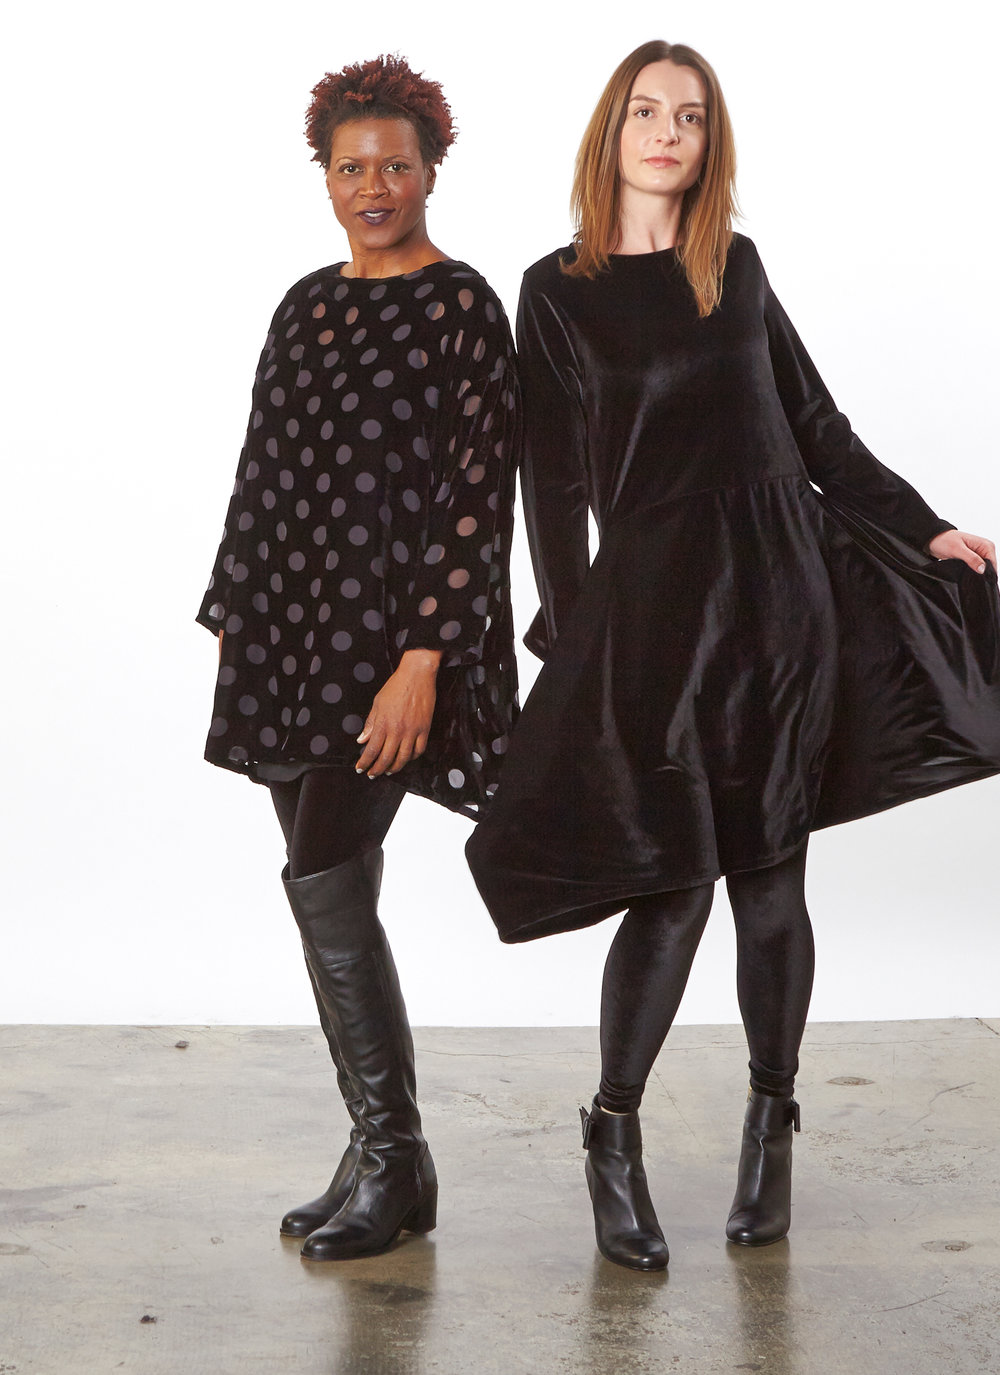 Natalia Tunic, Legging in Black Italian Stretch Velvet